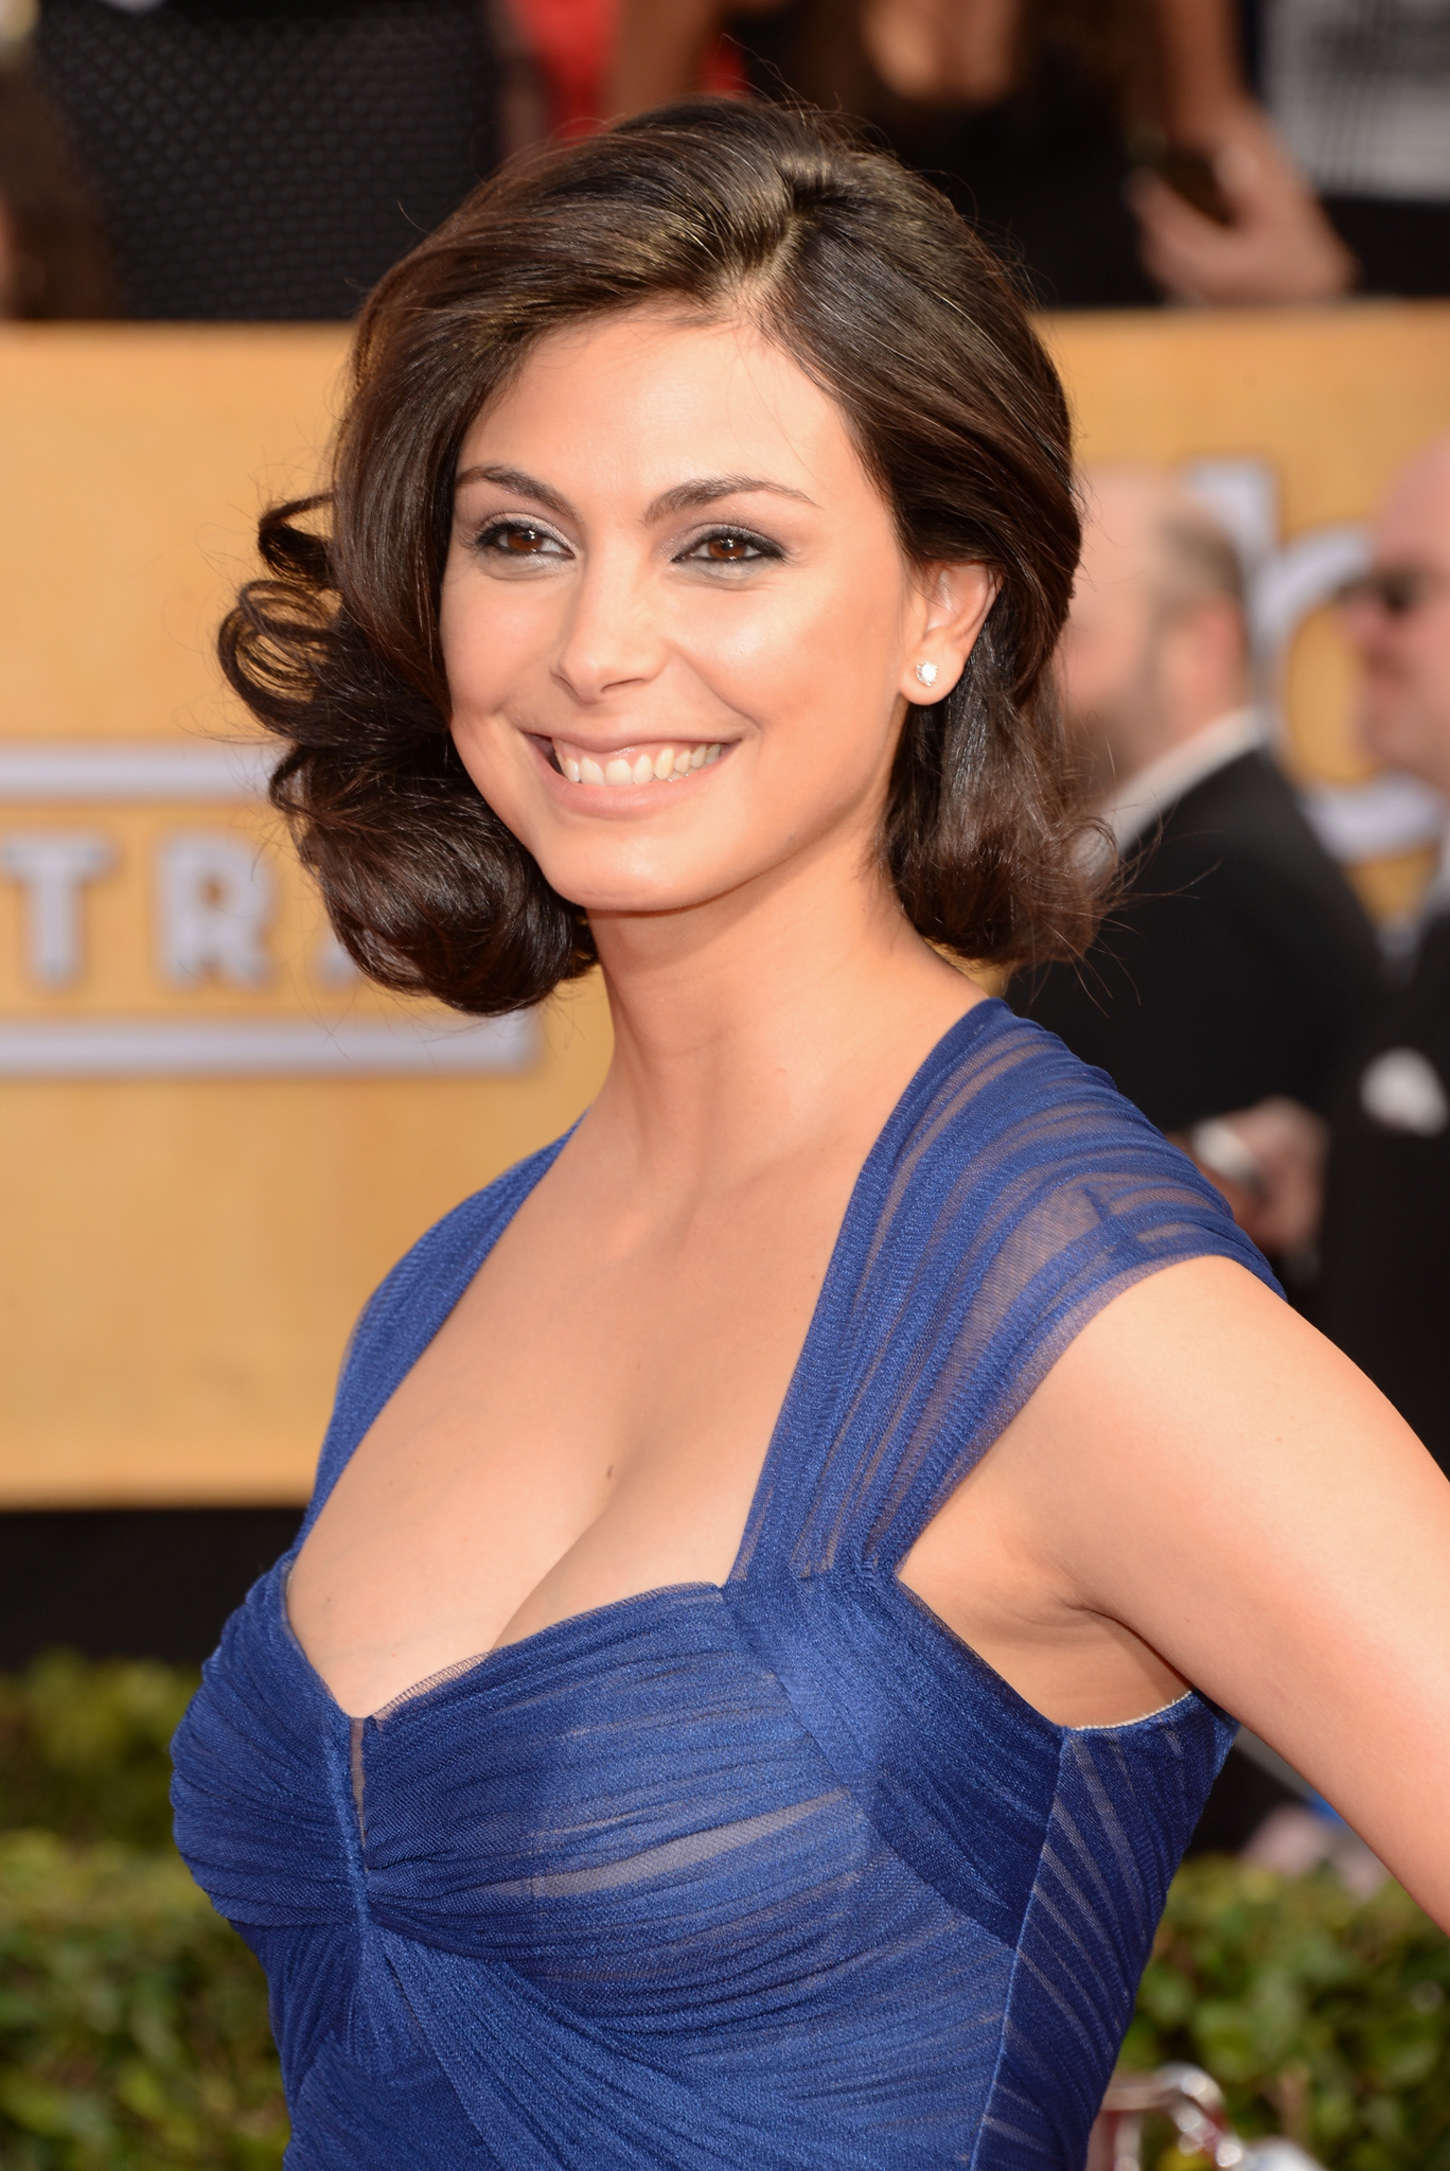 Pic Morena Baccarin naked (36 photo), Tits, Fappening, Selfie, bra 2019